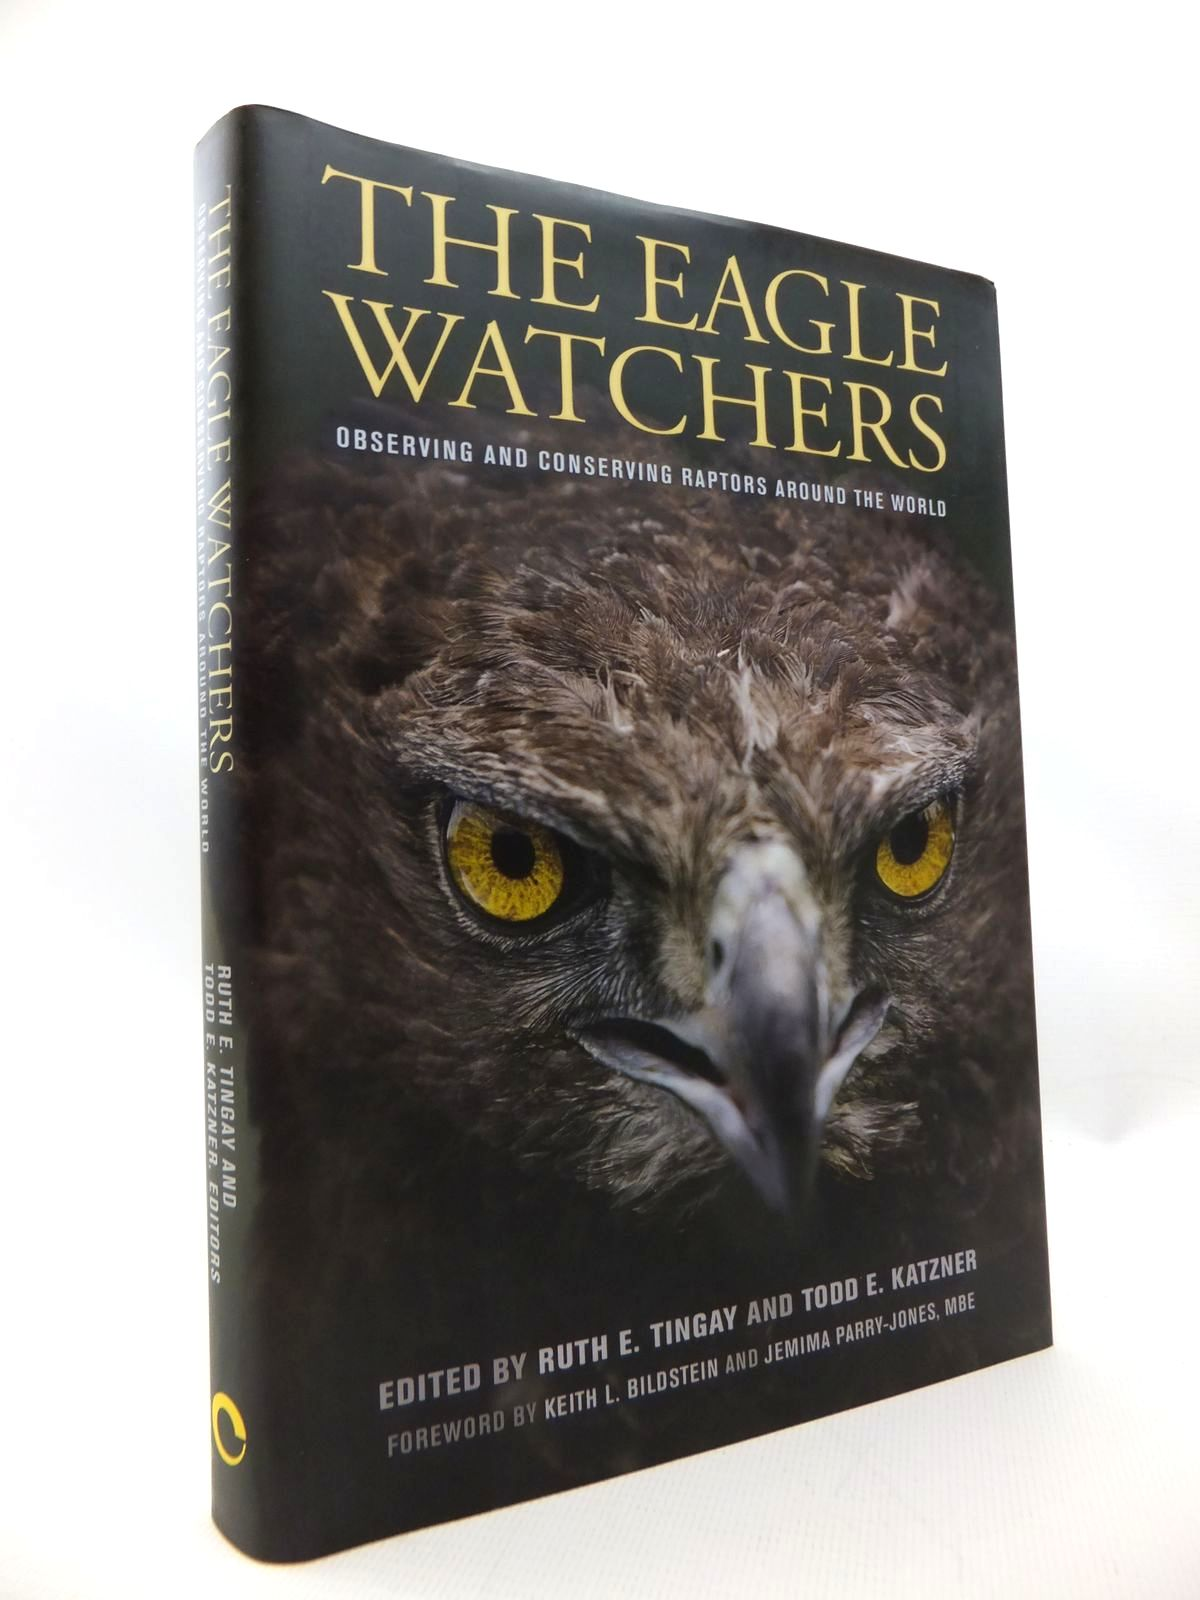 Photo of THE EAGLE WATCHERS: OBSERVING AND CONSERVING RAPTORS AROUND THE WORLD written by Tingay, Ruth E. Katzner, Todd E. published by Comstock Publishing Associates (STOCK CODE: 1815232)  for sale by Stella & Rose's Books